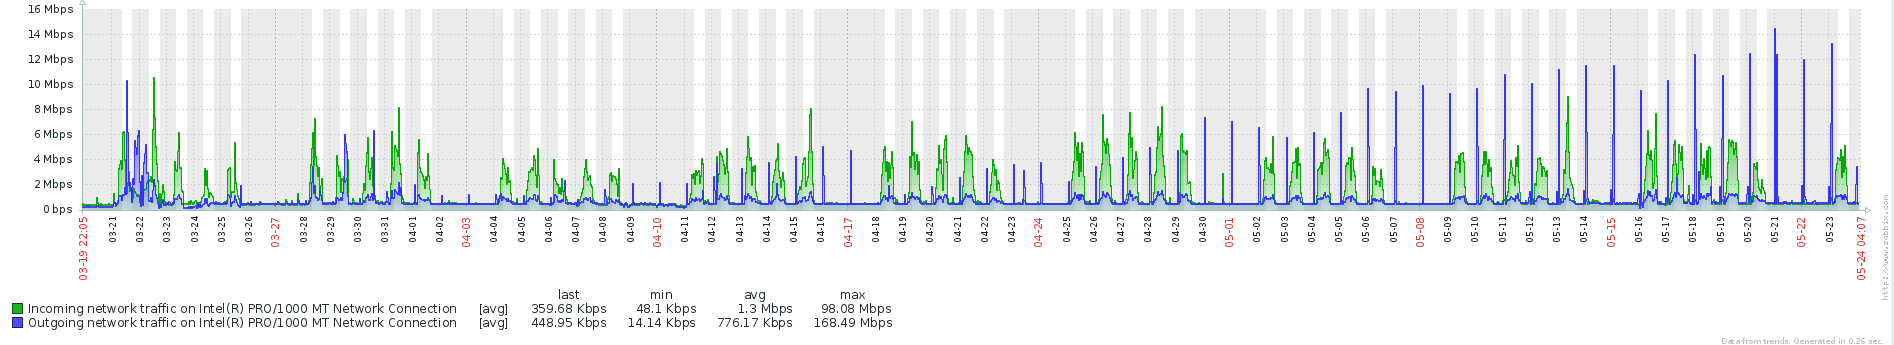 Incoming and outgoing traffic for several days on the serverser after usage of sp_executesql